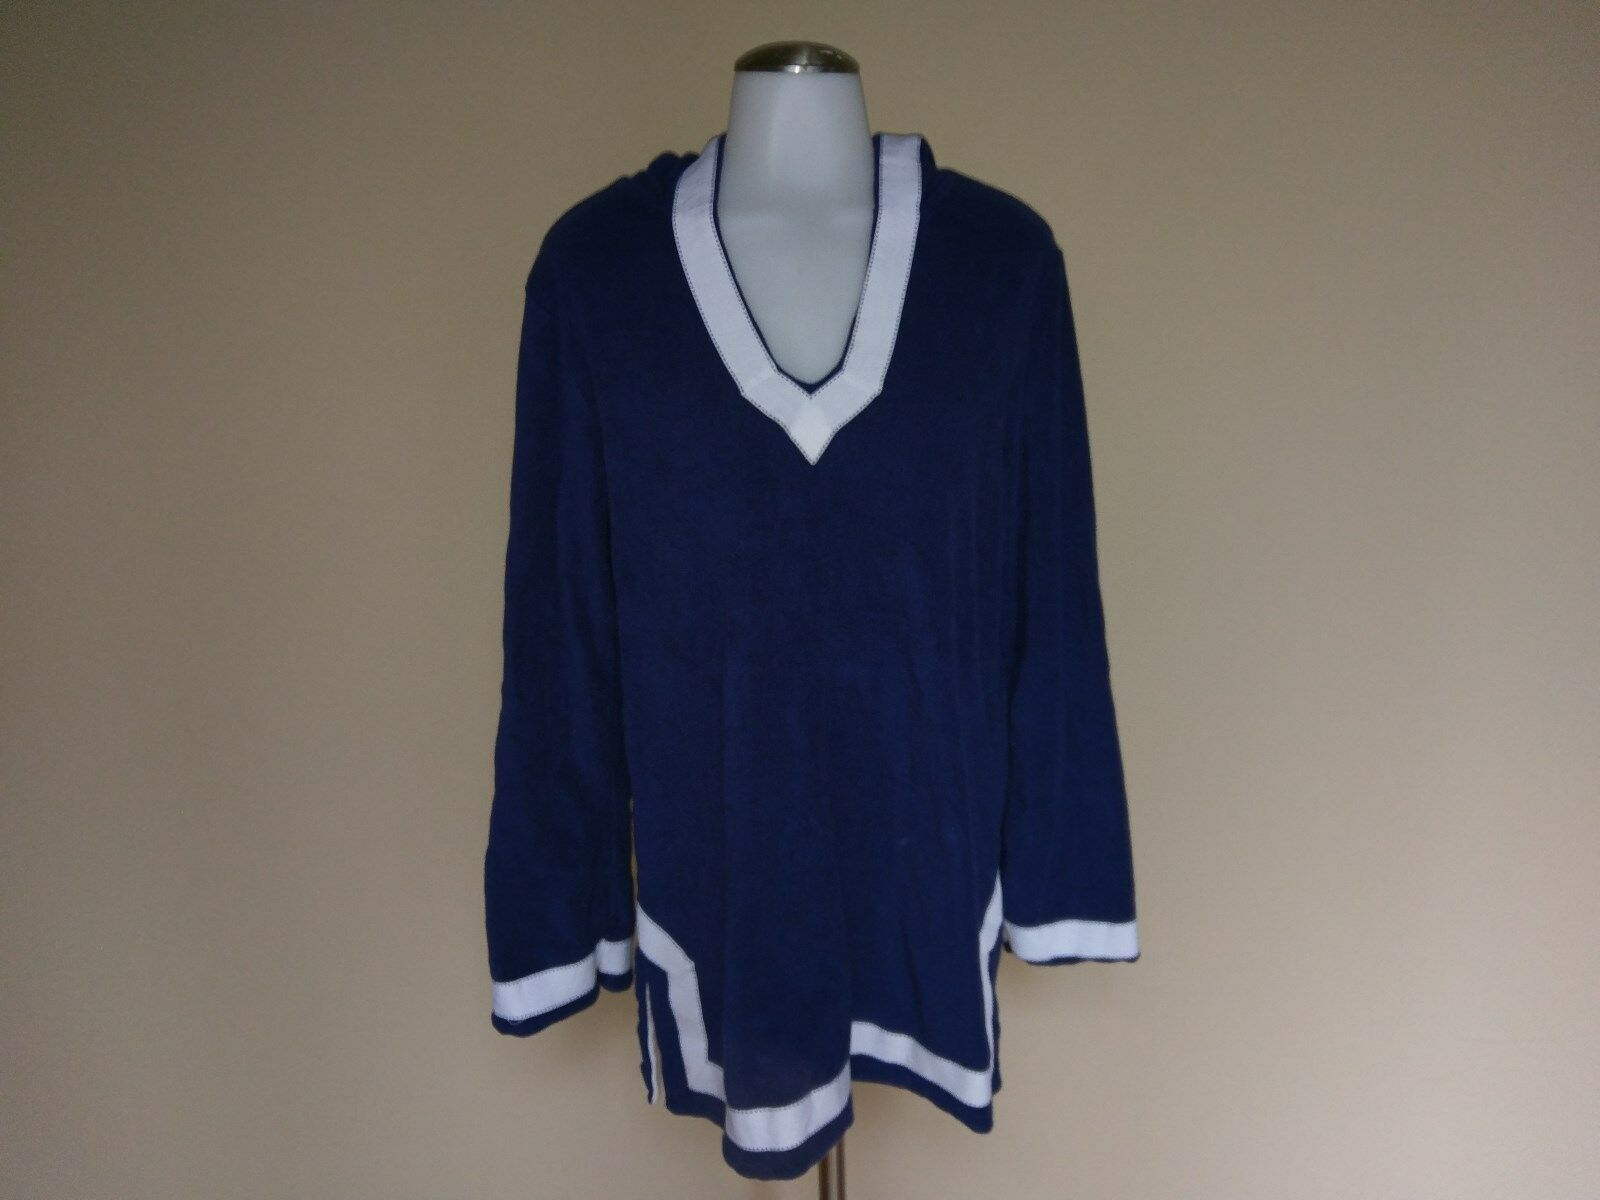 Lands' End Small Navy bluee Terry Cloth Tunic Top Swim Cover Up White Cotton Hood